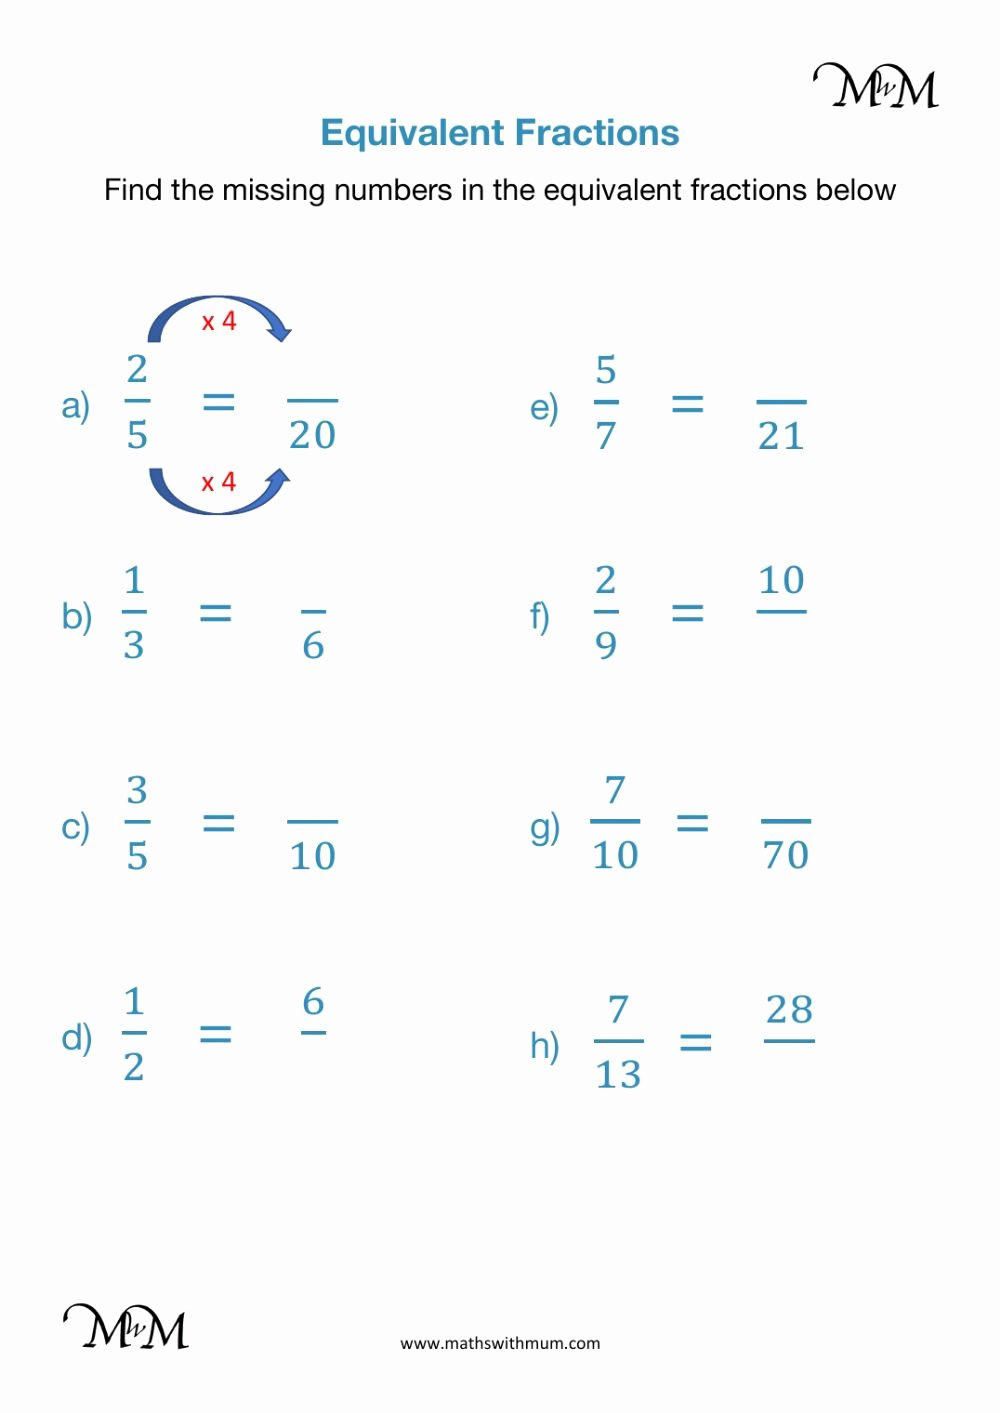 Equivalent Fractions Worksheets 5th Grade Kids Equivalent Fractions Interactive Worksheet